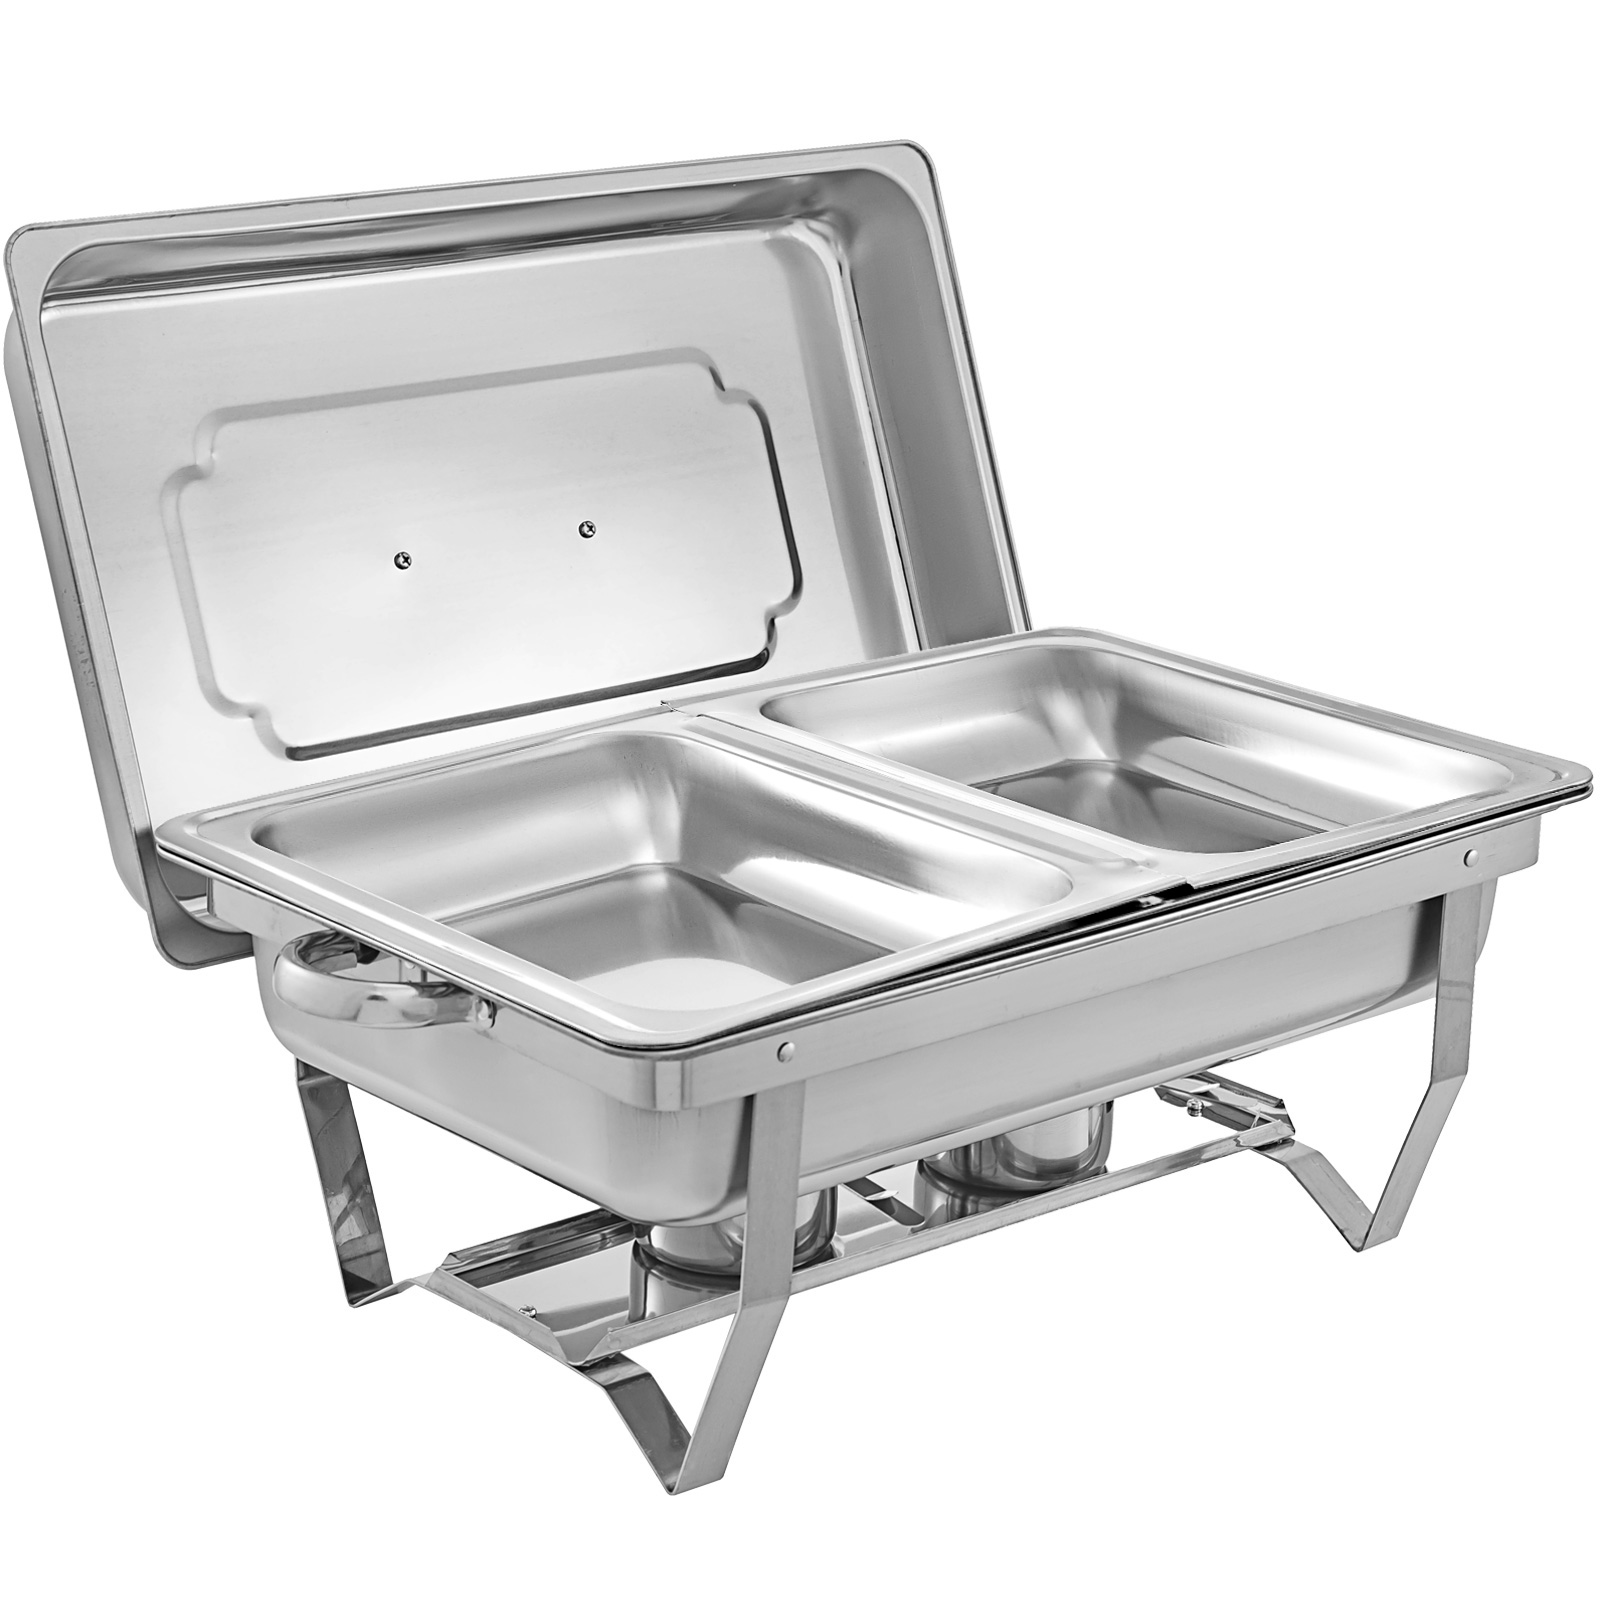 thumbnail 83 - Multi-Stainless-Steel-Chafing-Dish-Bain-Marie-Bow-Catering-Dish-Hotpot-Server